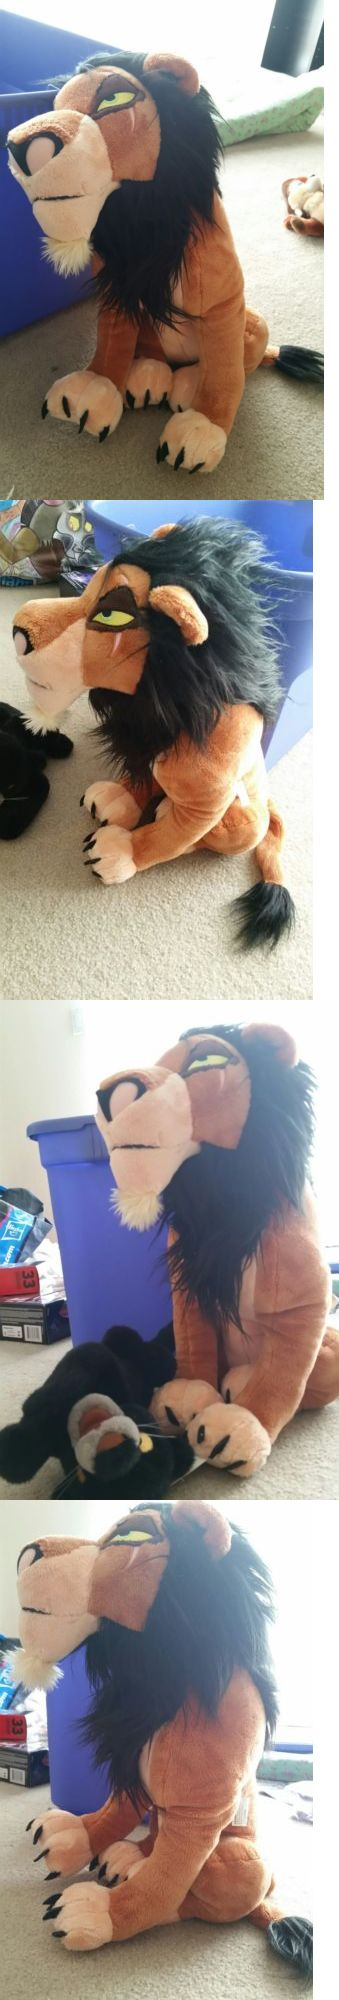 Lion King 44037: The Lion King Huge 18 Scar Plush Stuffed Toy W Tags Disney Store Exclusive -> BUY IT NOW ONLY: $174.98 on eBay!